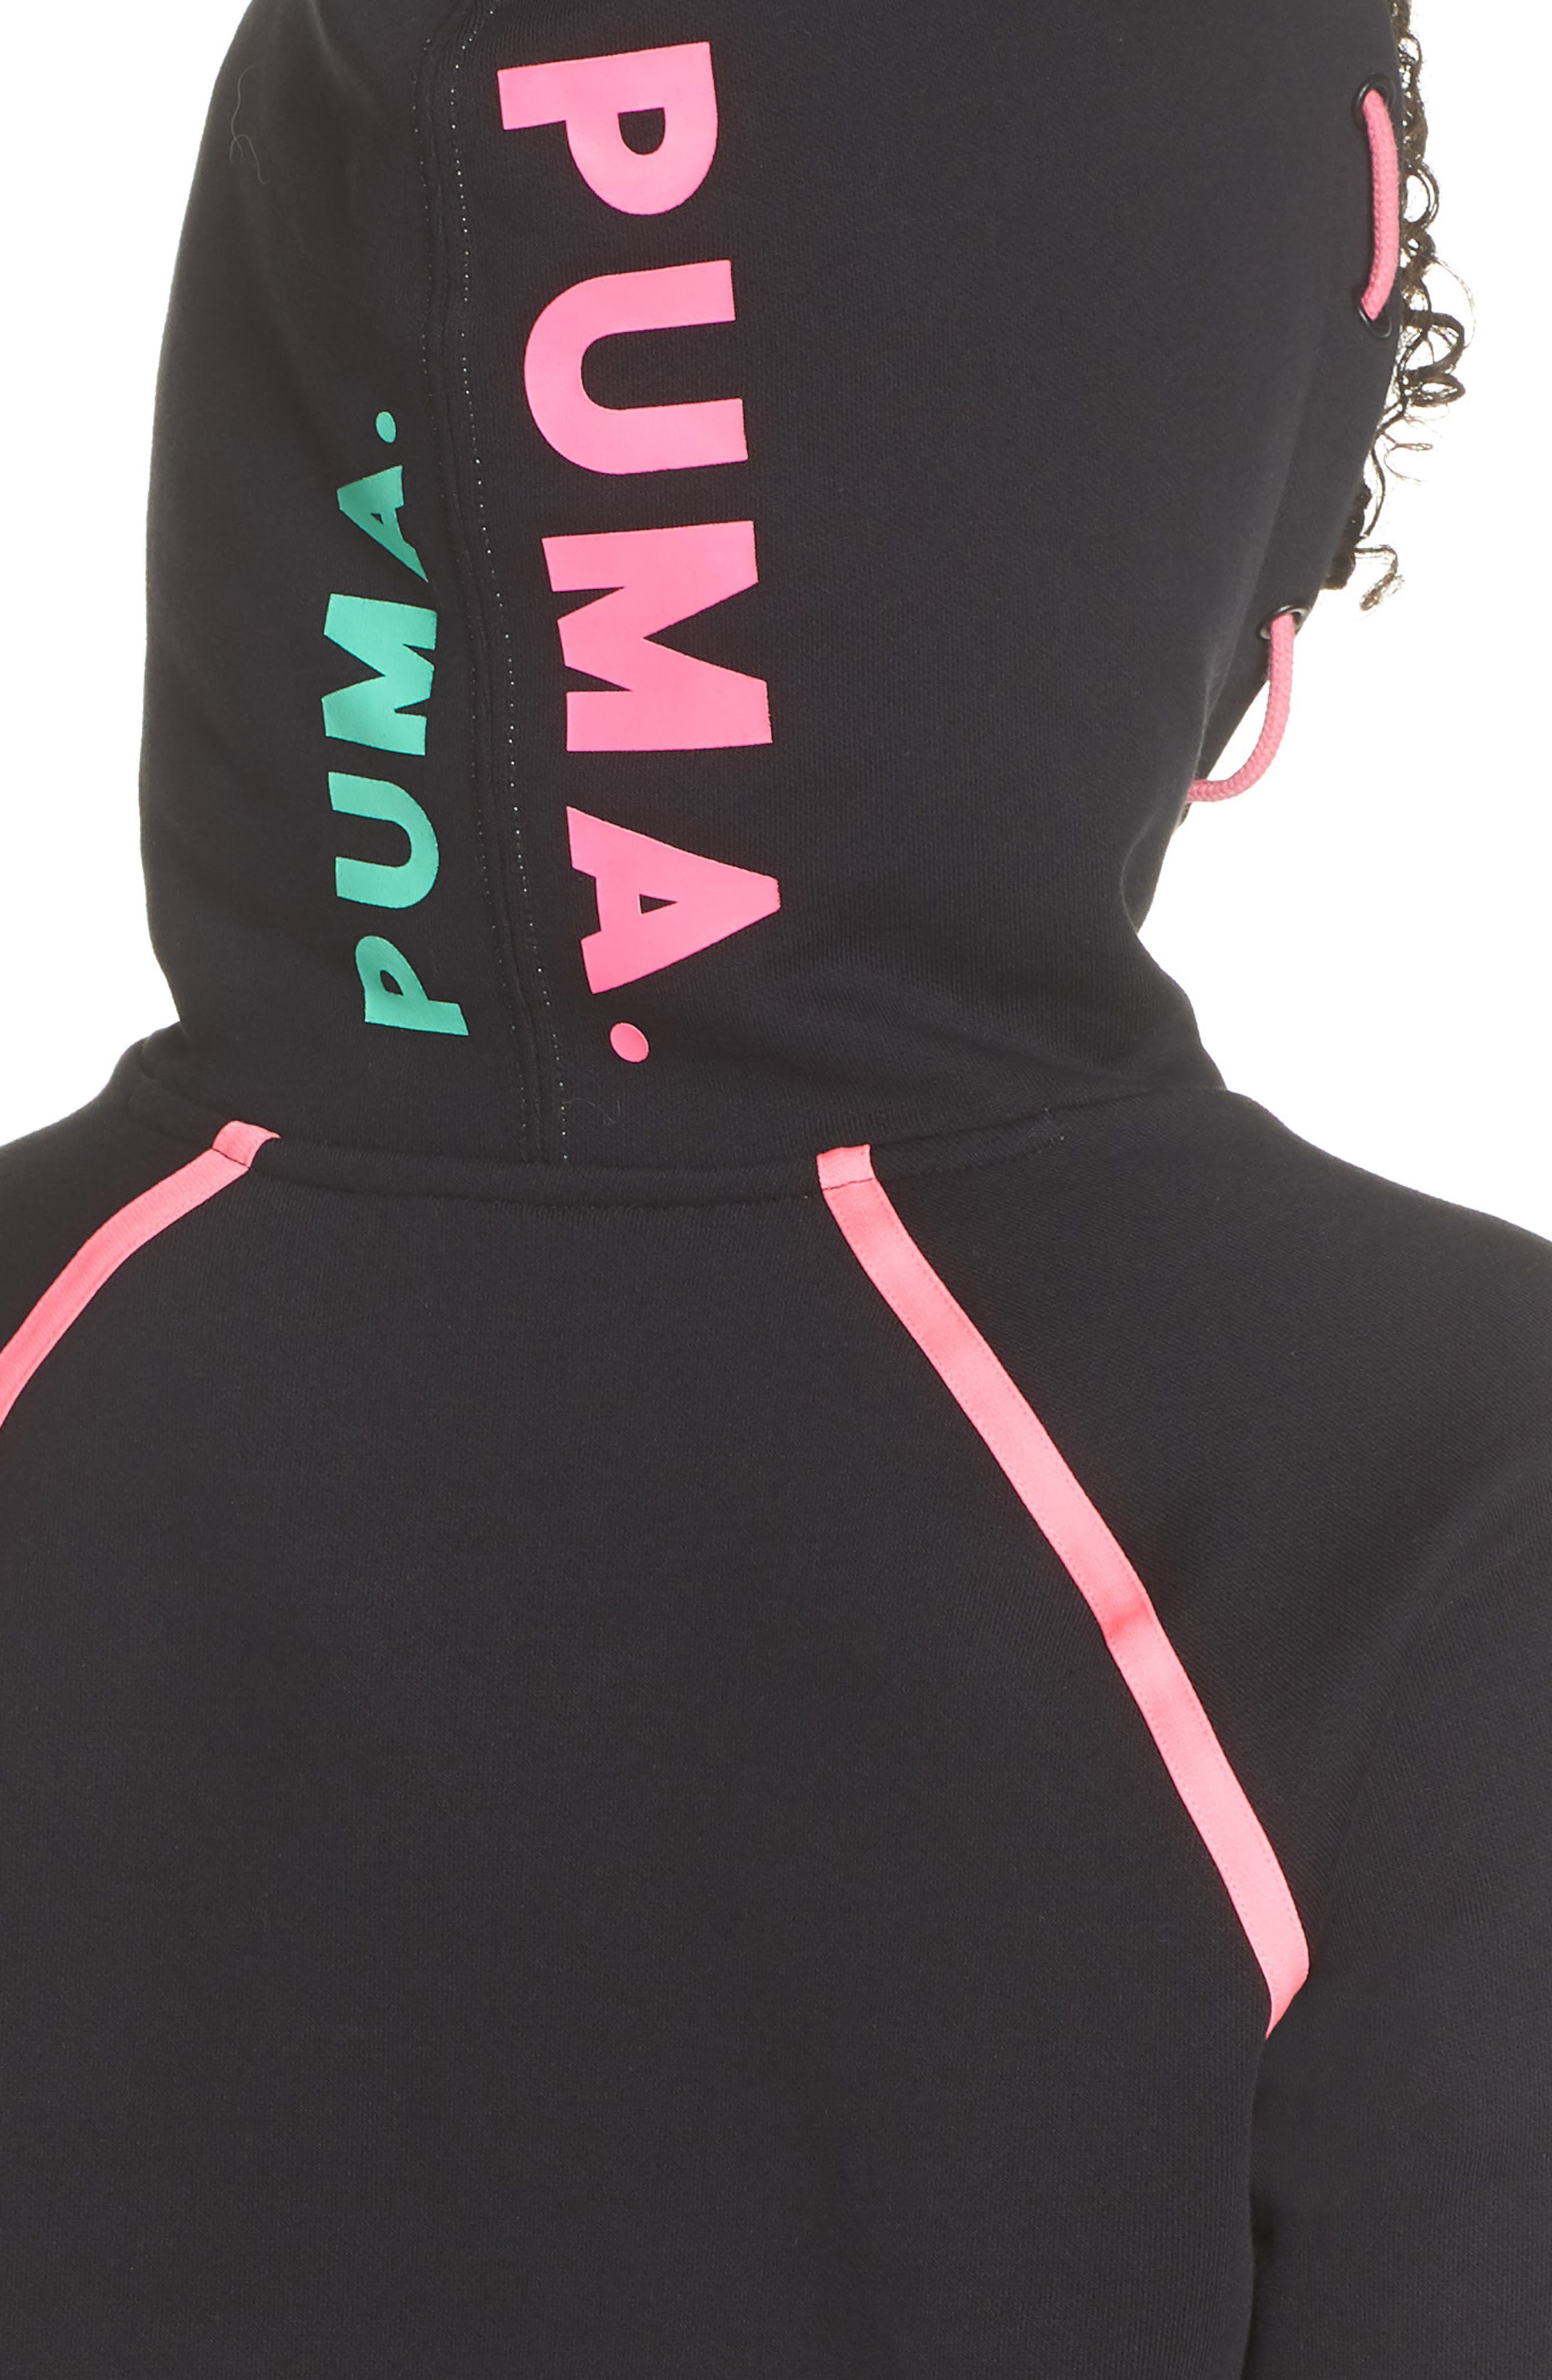 Reflect Hoodie,                             Alternate thumbnail 4, color,                             PUMA BLACK